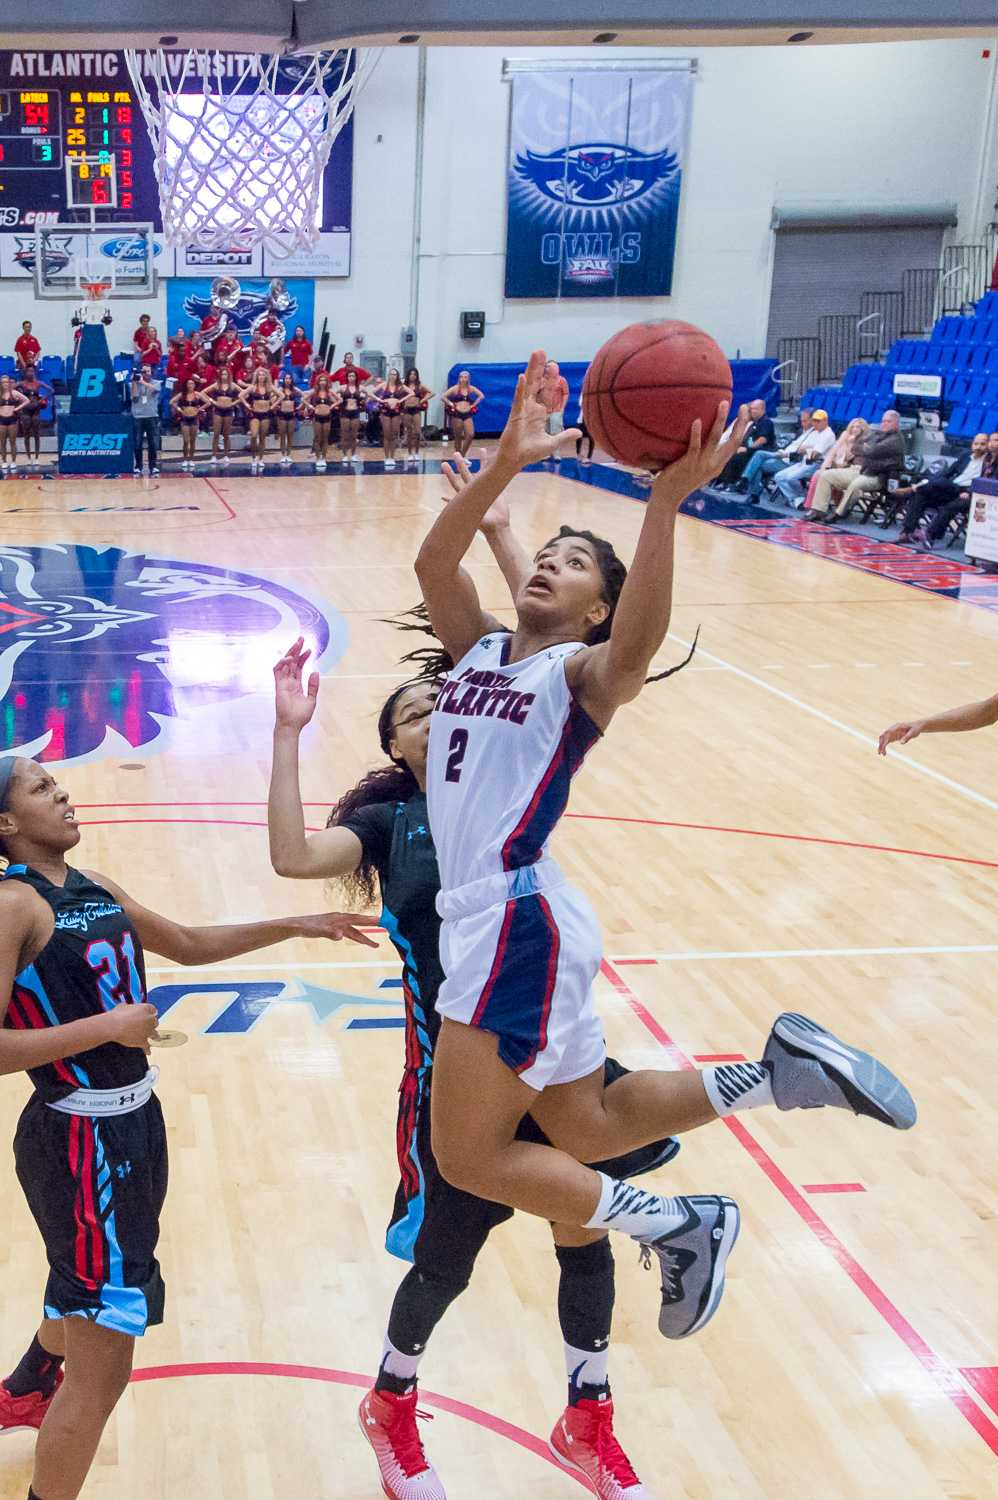 Bailey (2) goes up for a jump shot in the second half against the Lady Techsters.